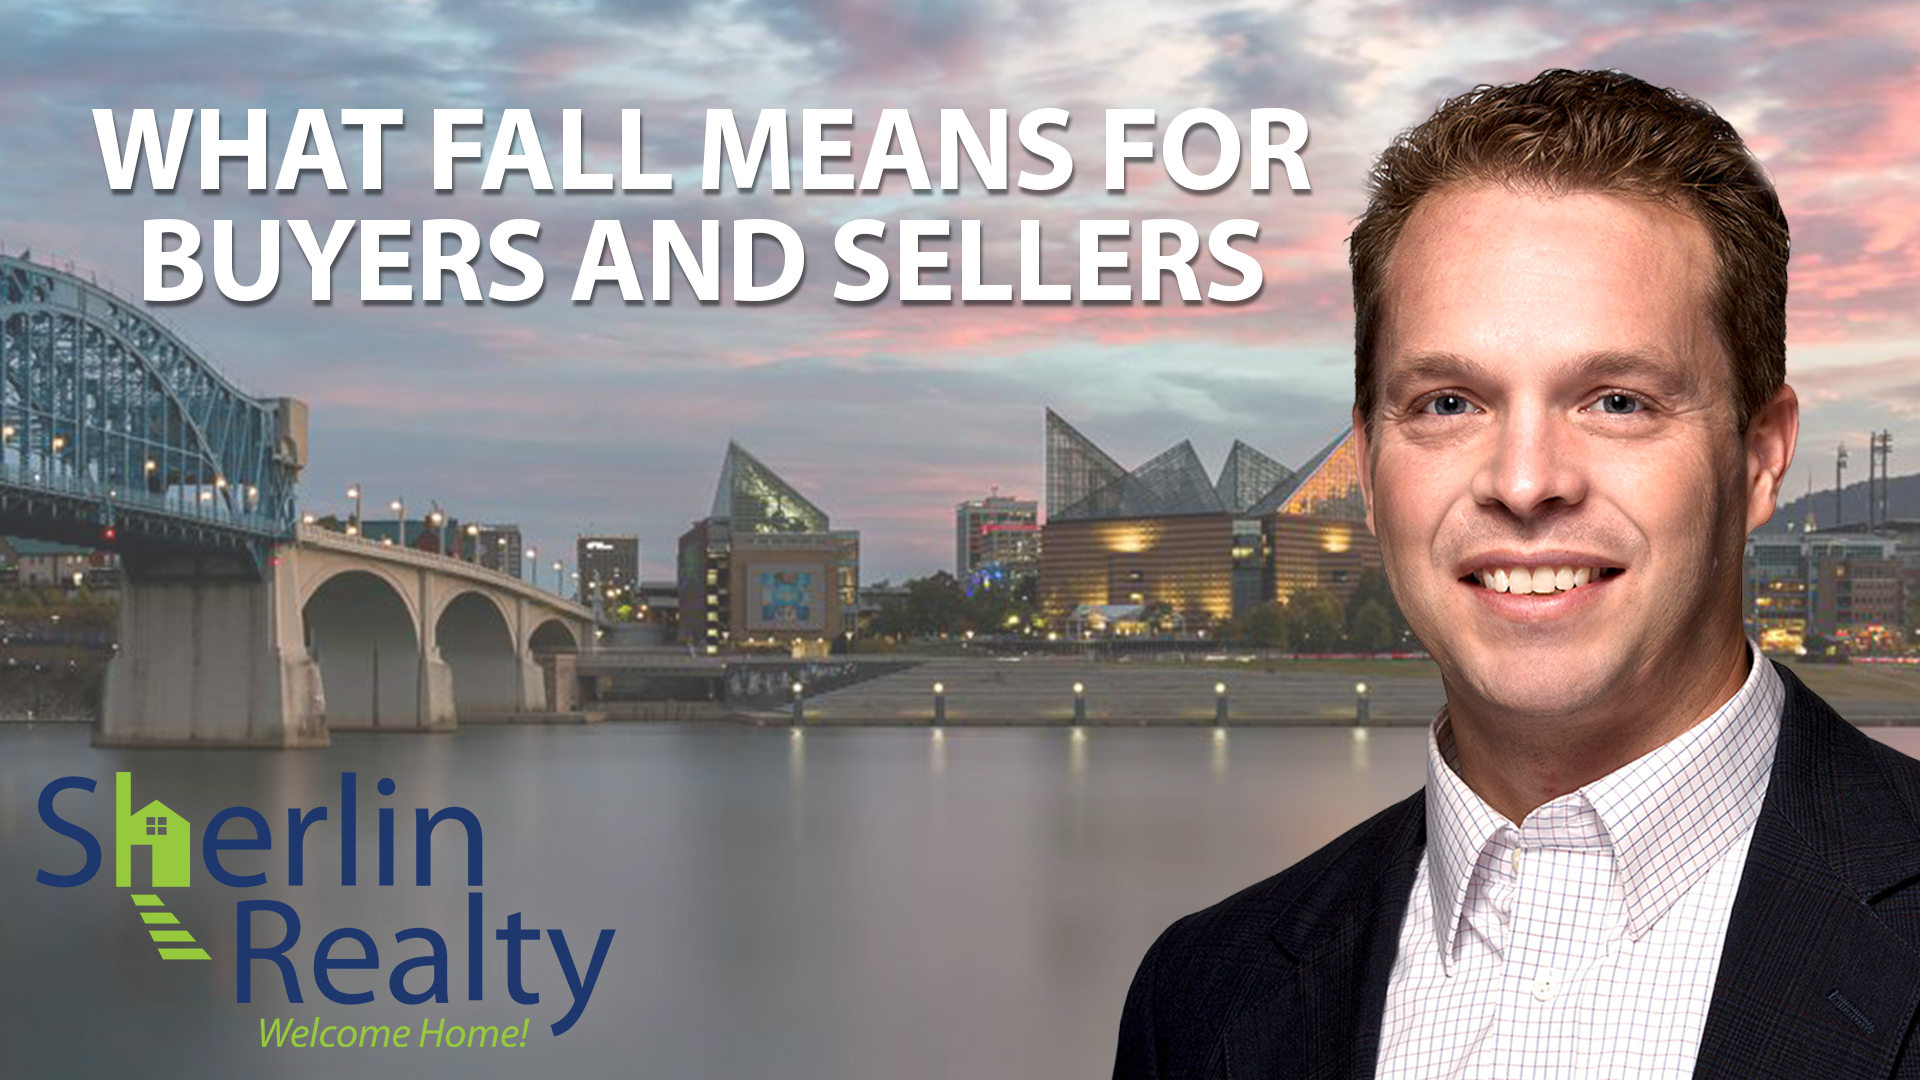 What You Should Know About Our Fall Market